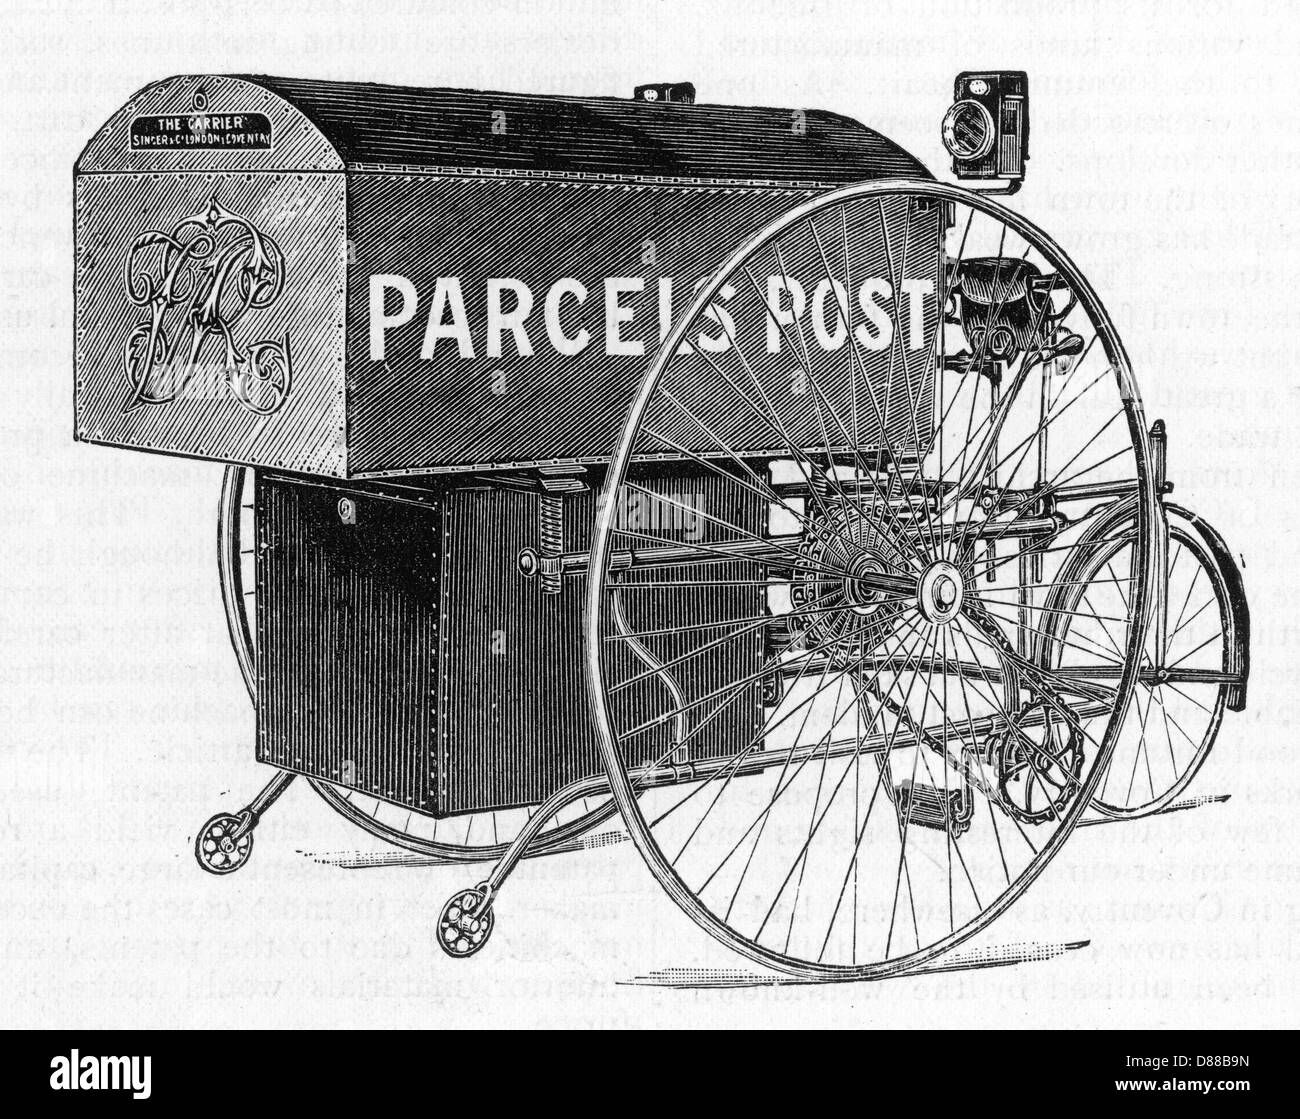 Parcel Delivery Tricycle - Stock Image